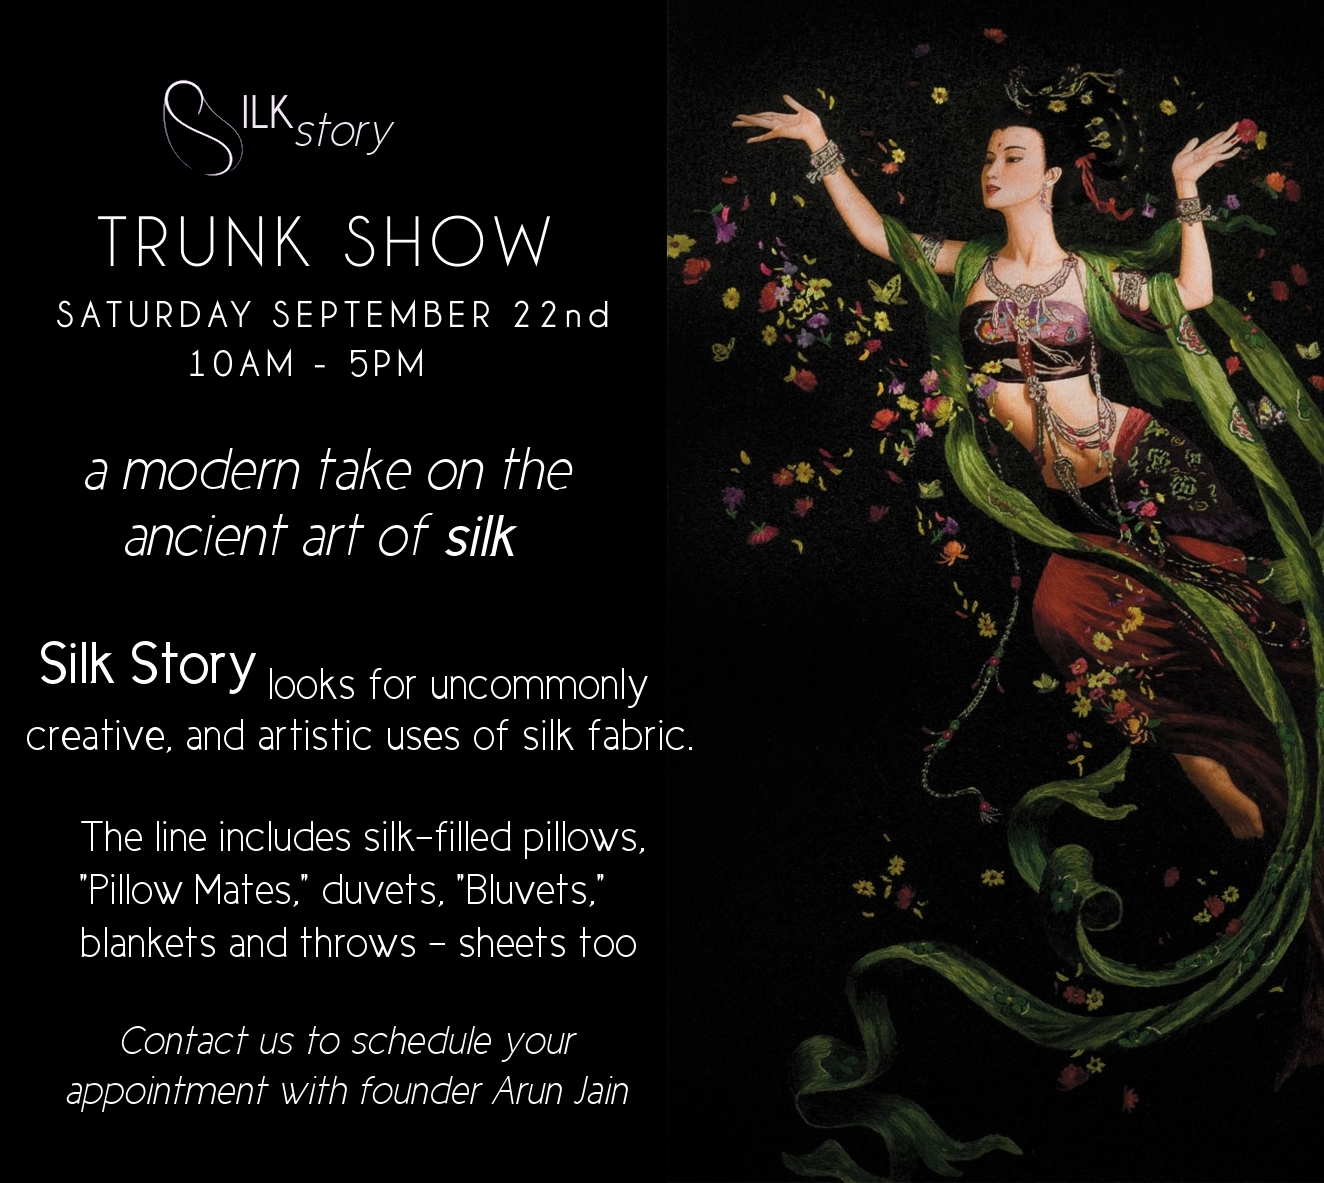 Silk Story trunk show 9/22 10-6